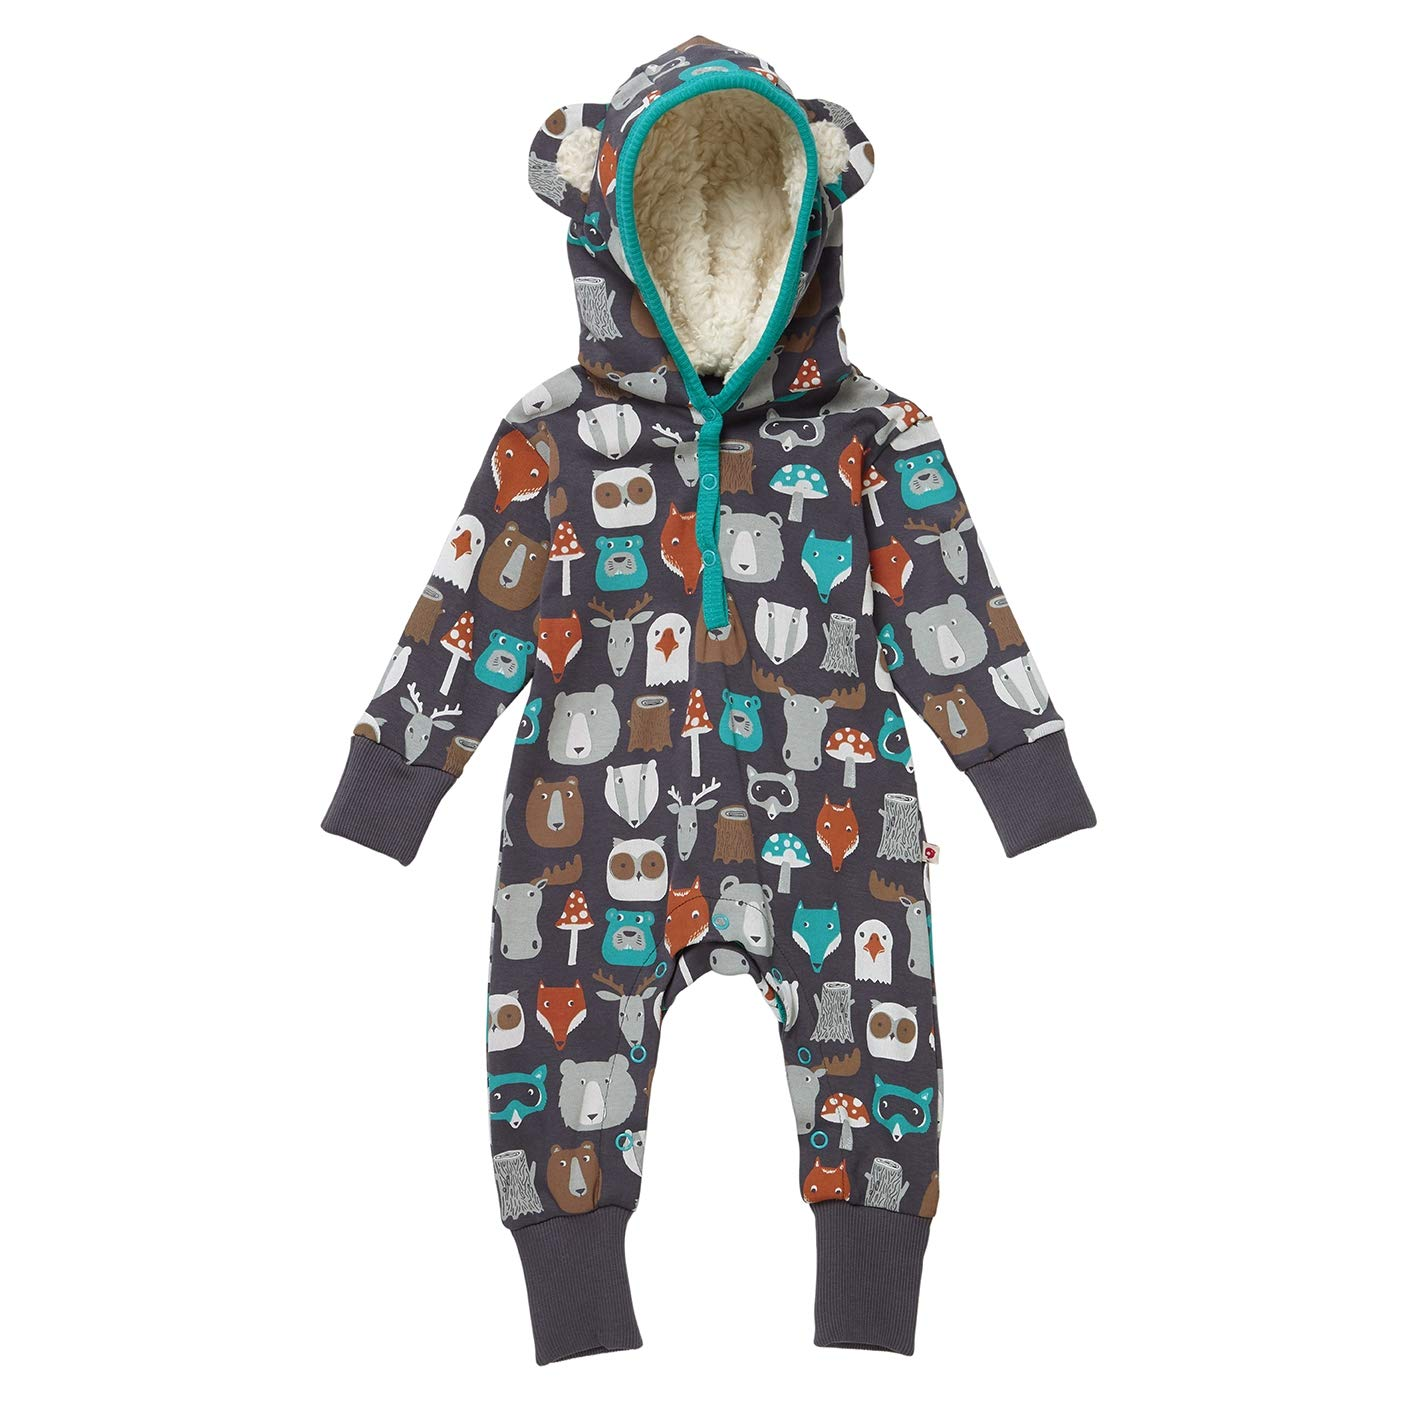 Piccalilly Organic Cotton Unisex Girls Boys Brown Forest Friends Print Baby Toddler Hooded Playsuit